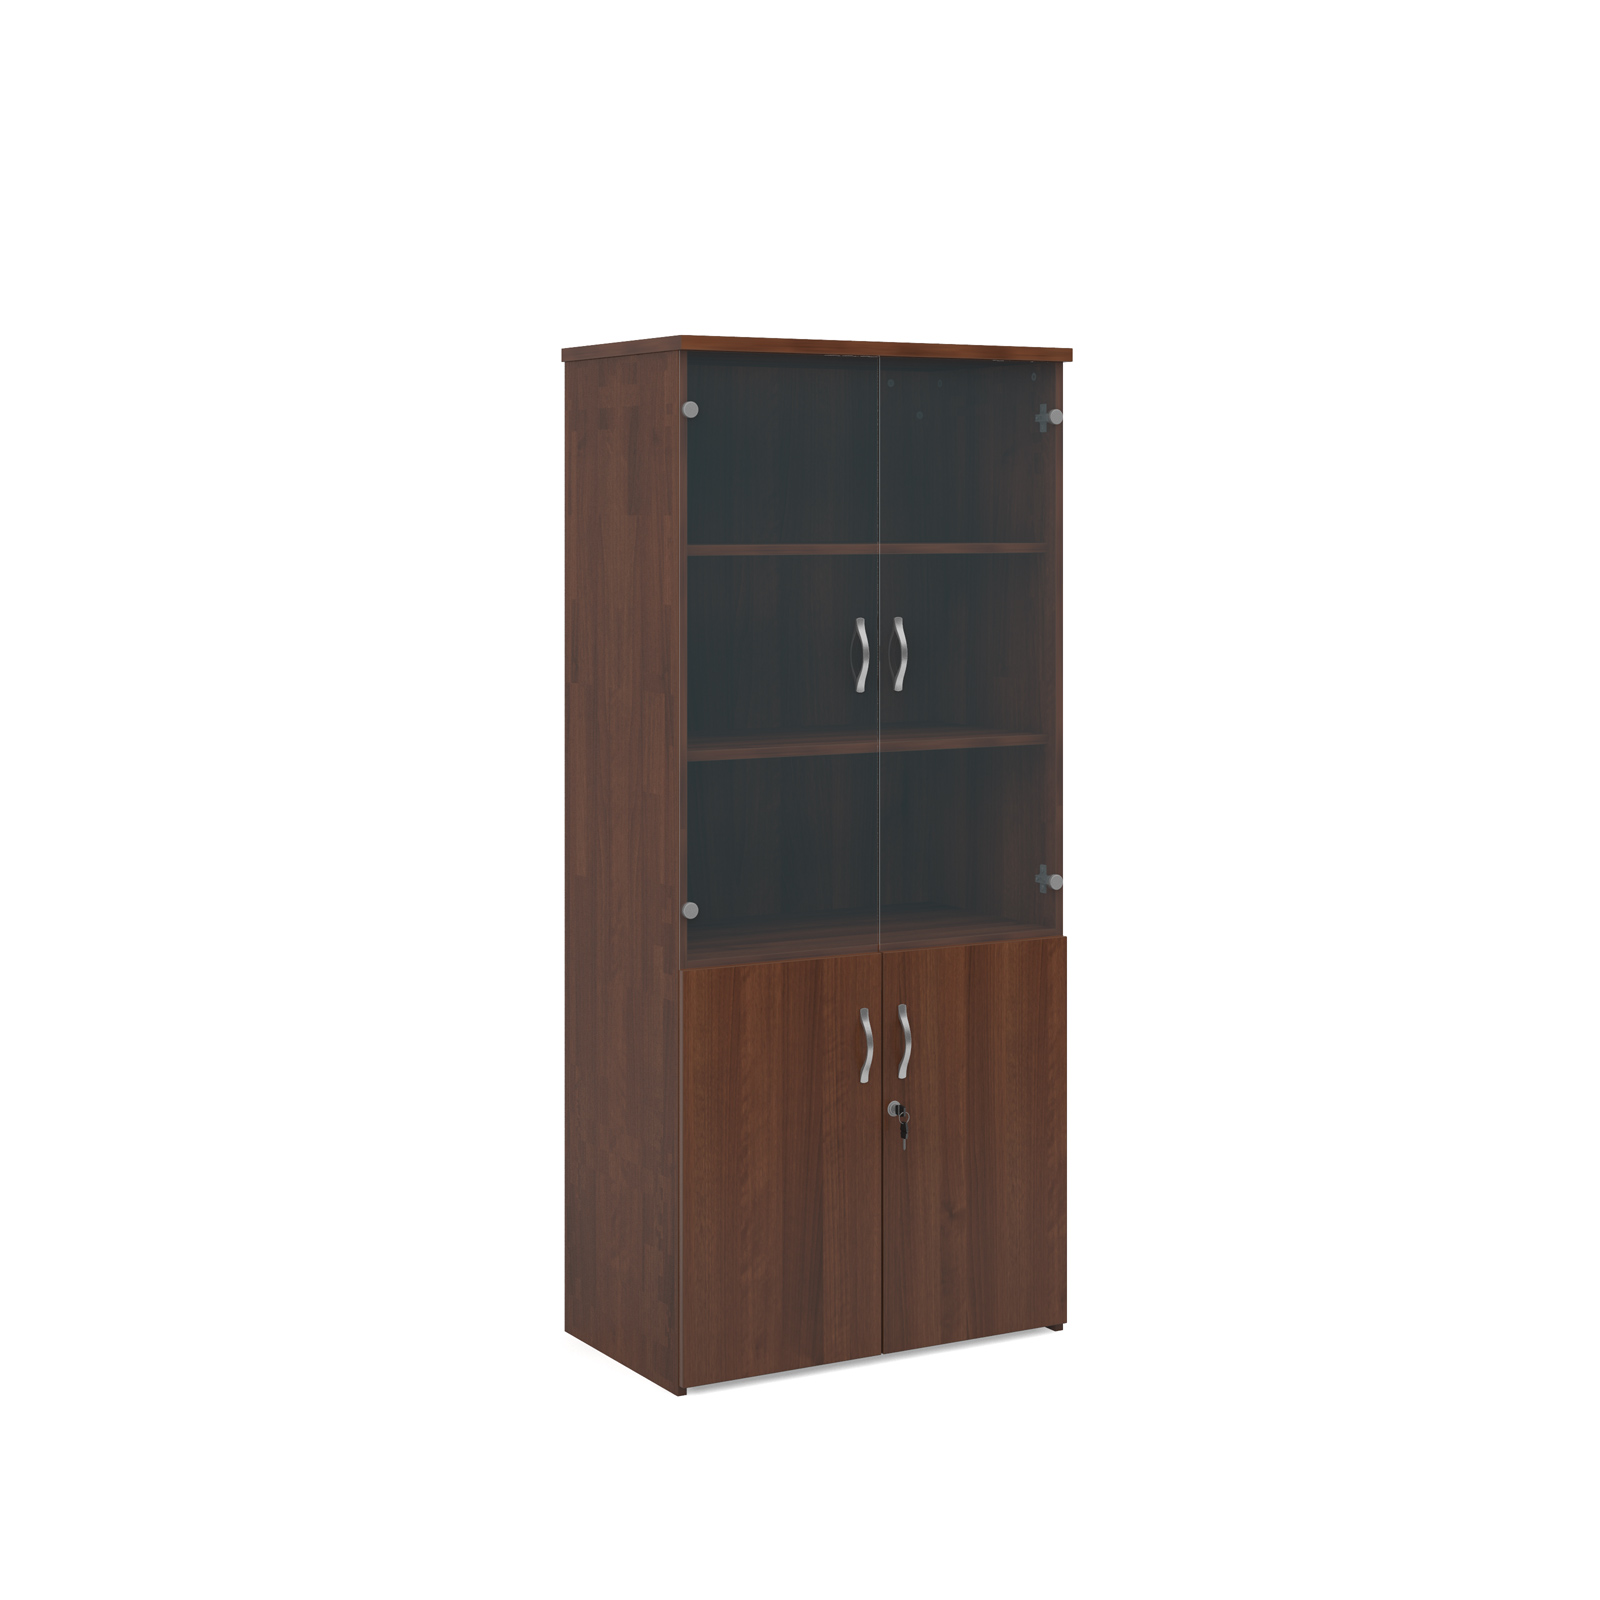 1790mm high combination unit with glass and wood doors in walnut